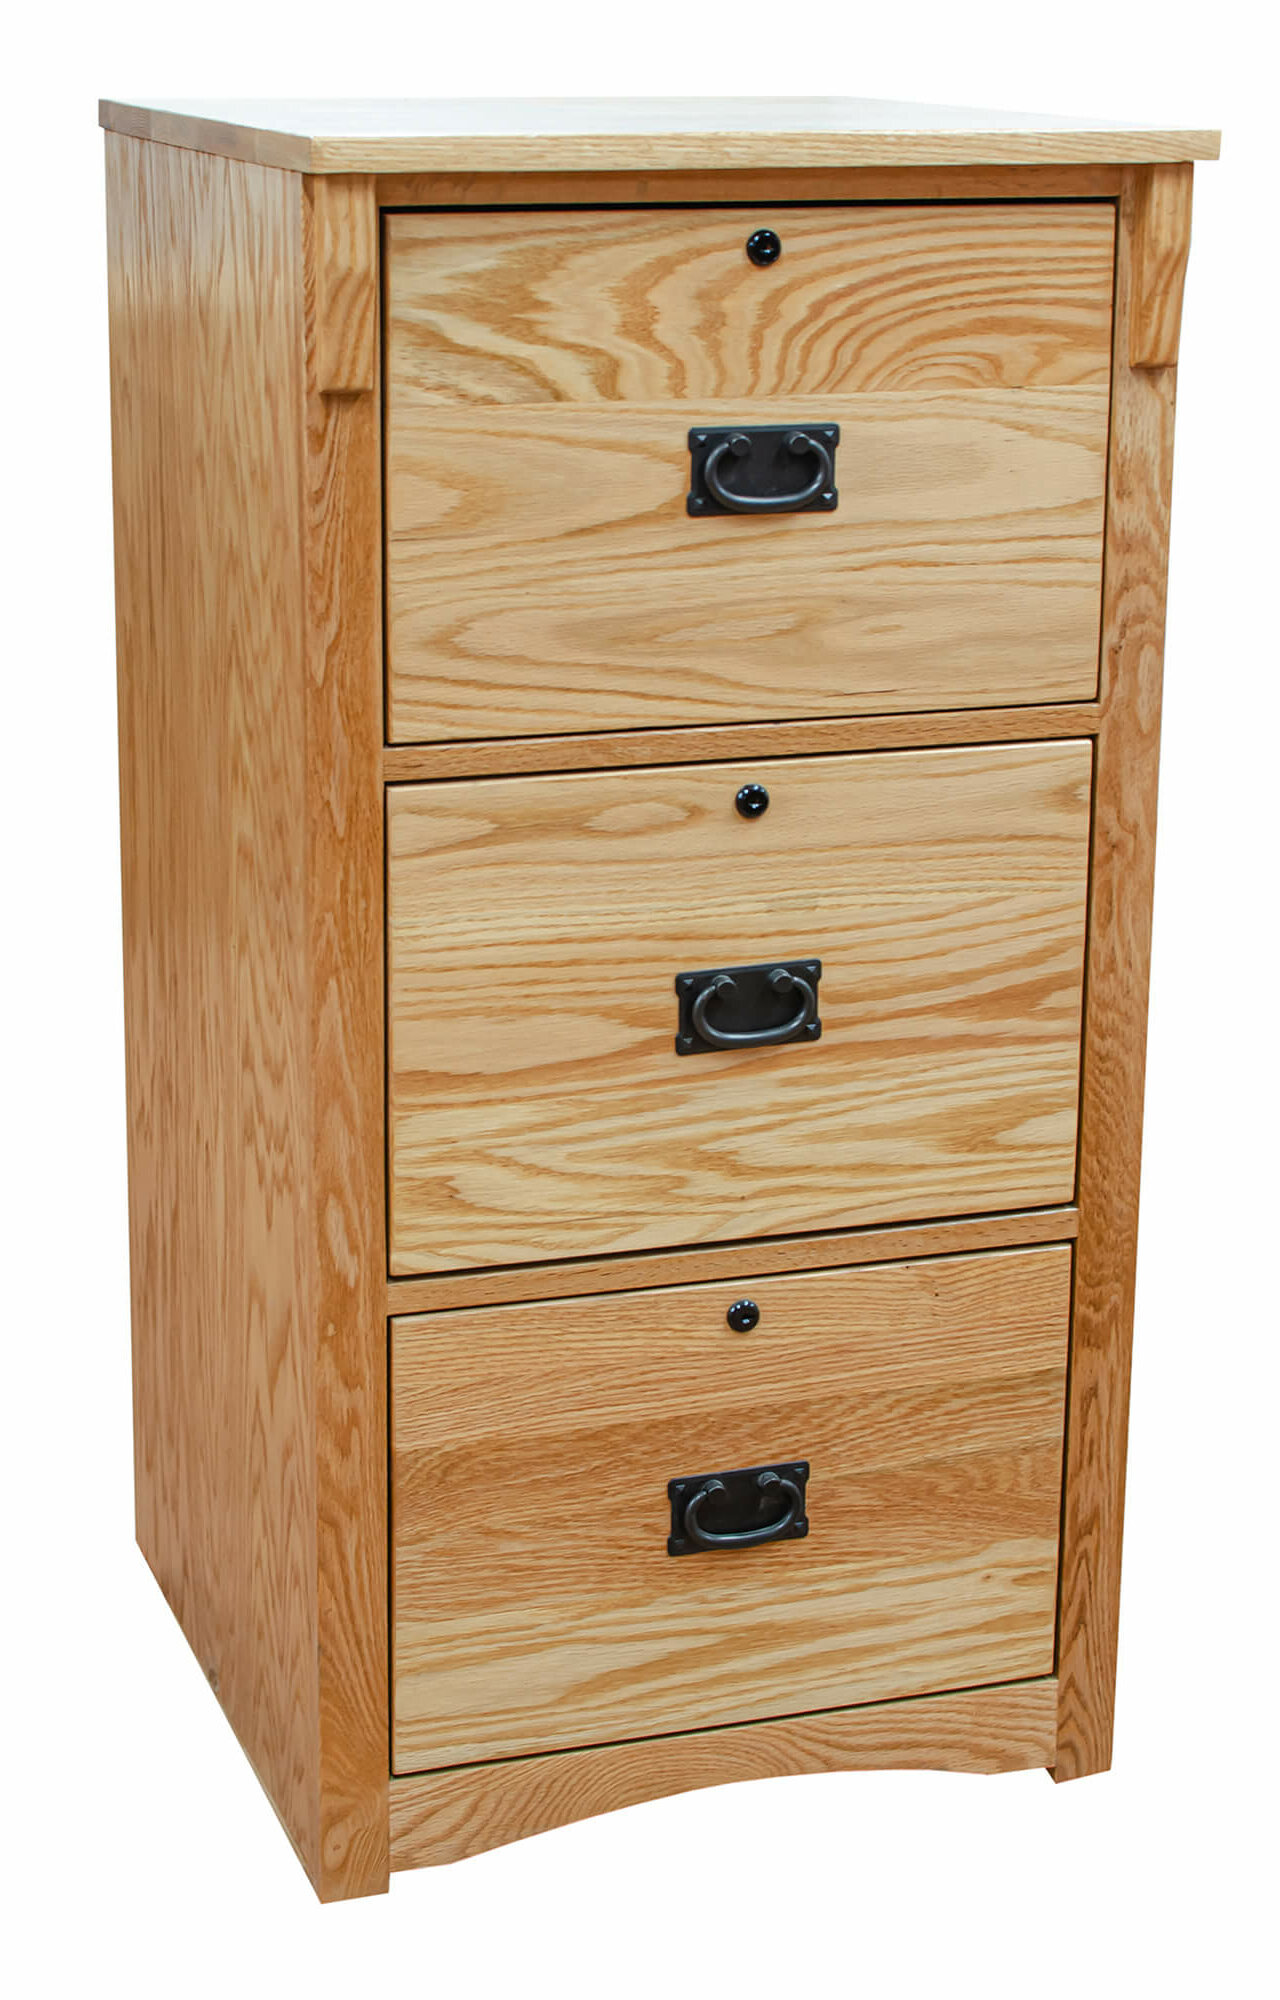 Upshaw 34-Drawer Vertical Filing Cabinet